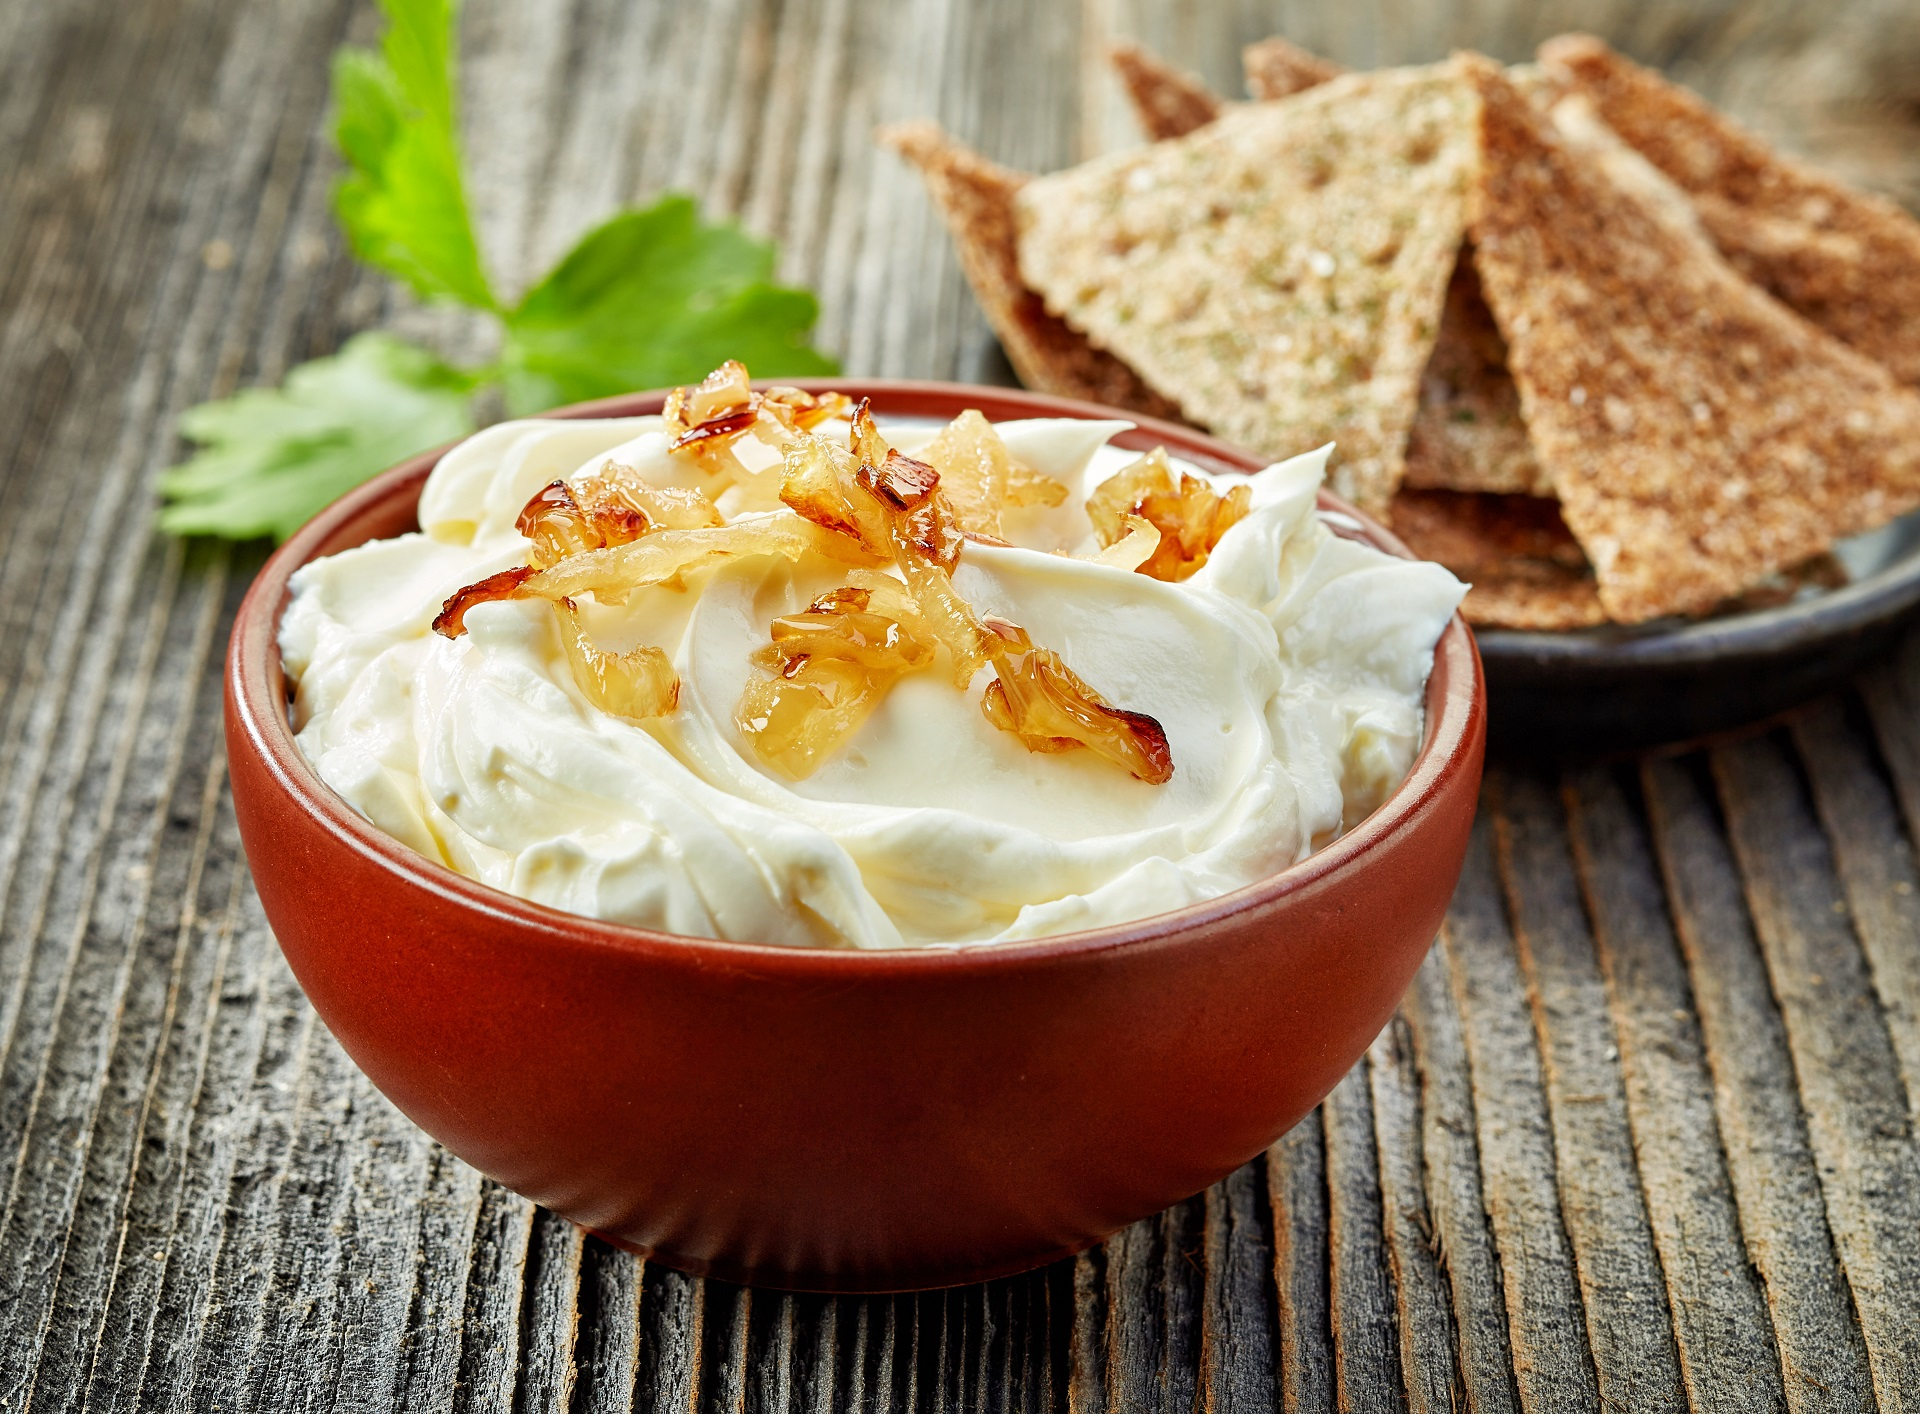 Bacon and caramelized onion dip recipe.